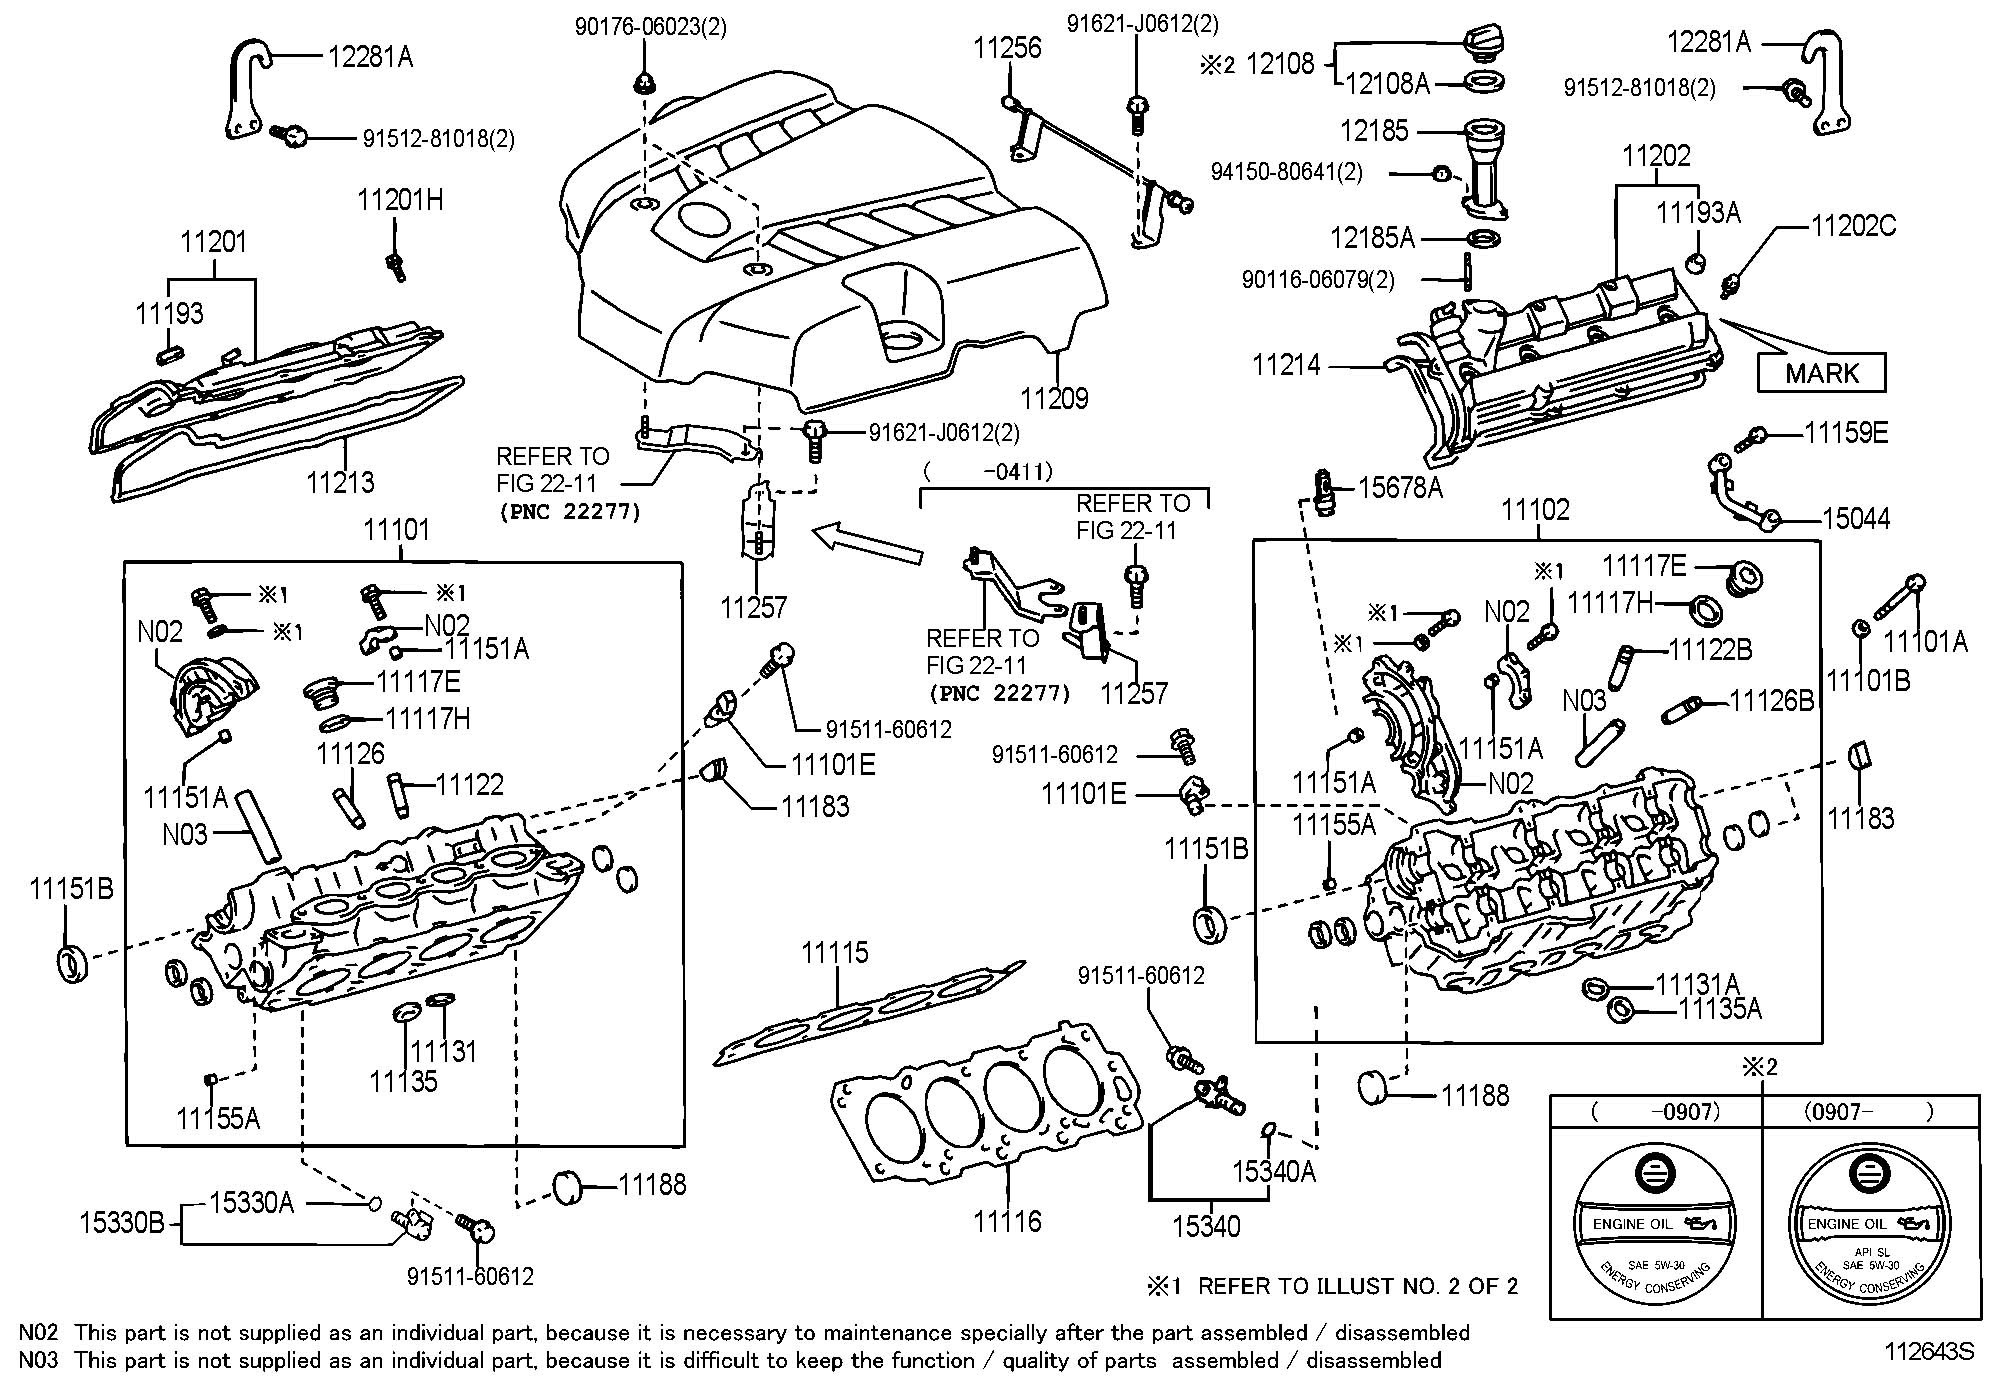 lexus rx300 engine diagram lexus es300 engine diagram lexus wiring rh detoxicrecenze com Lexus ES300 Engine Diagram Vacuum Diagrams for 1998 Lexus ES 300